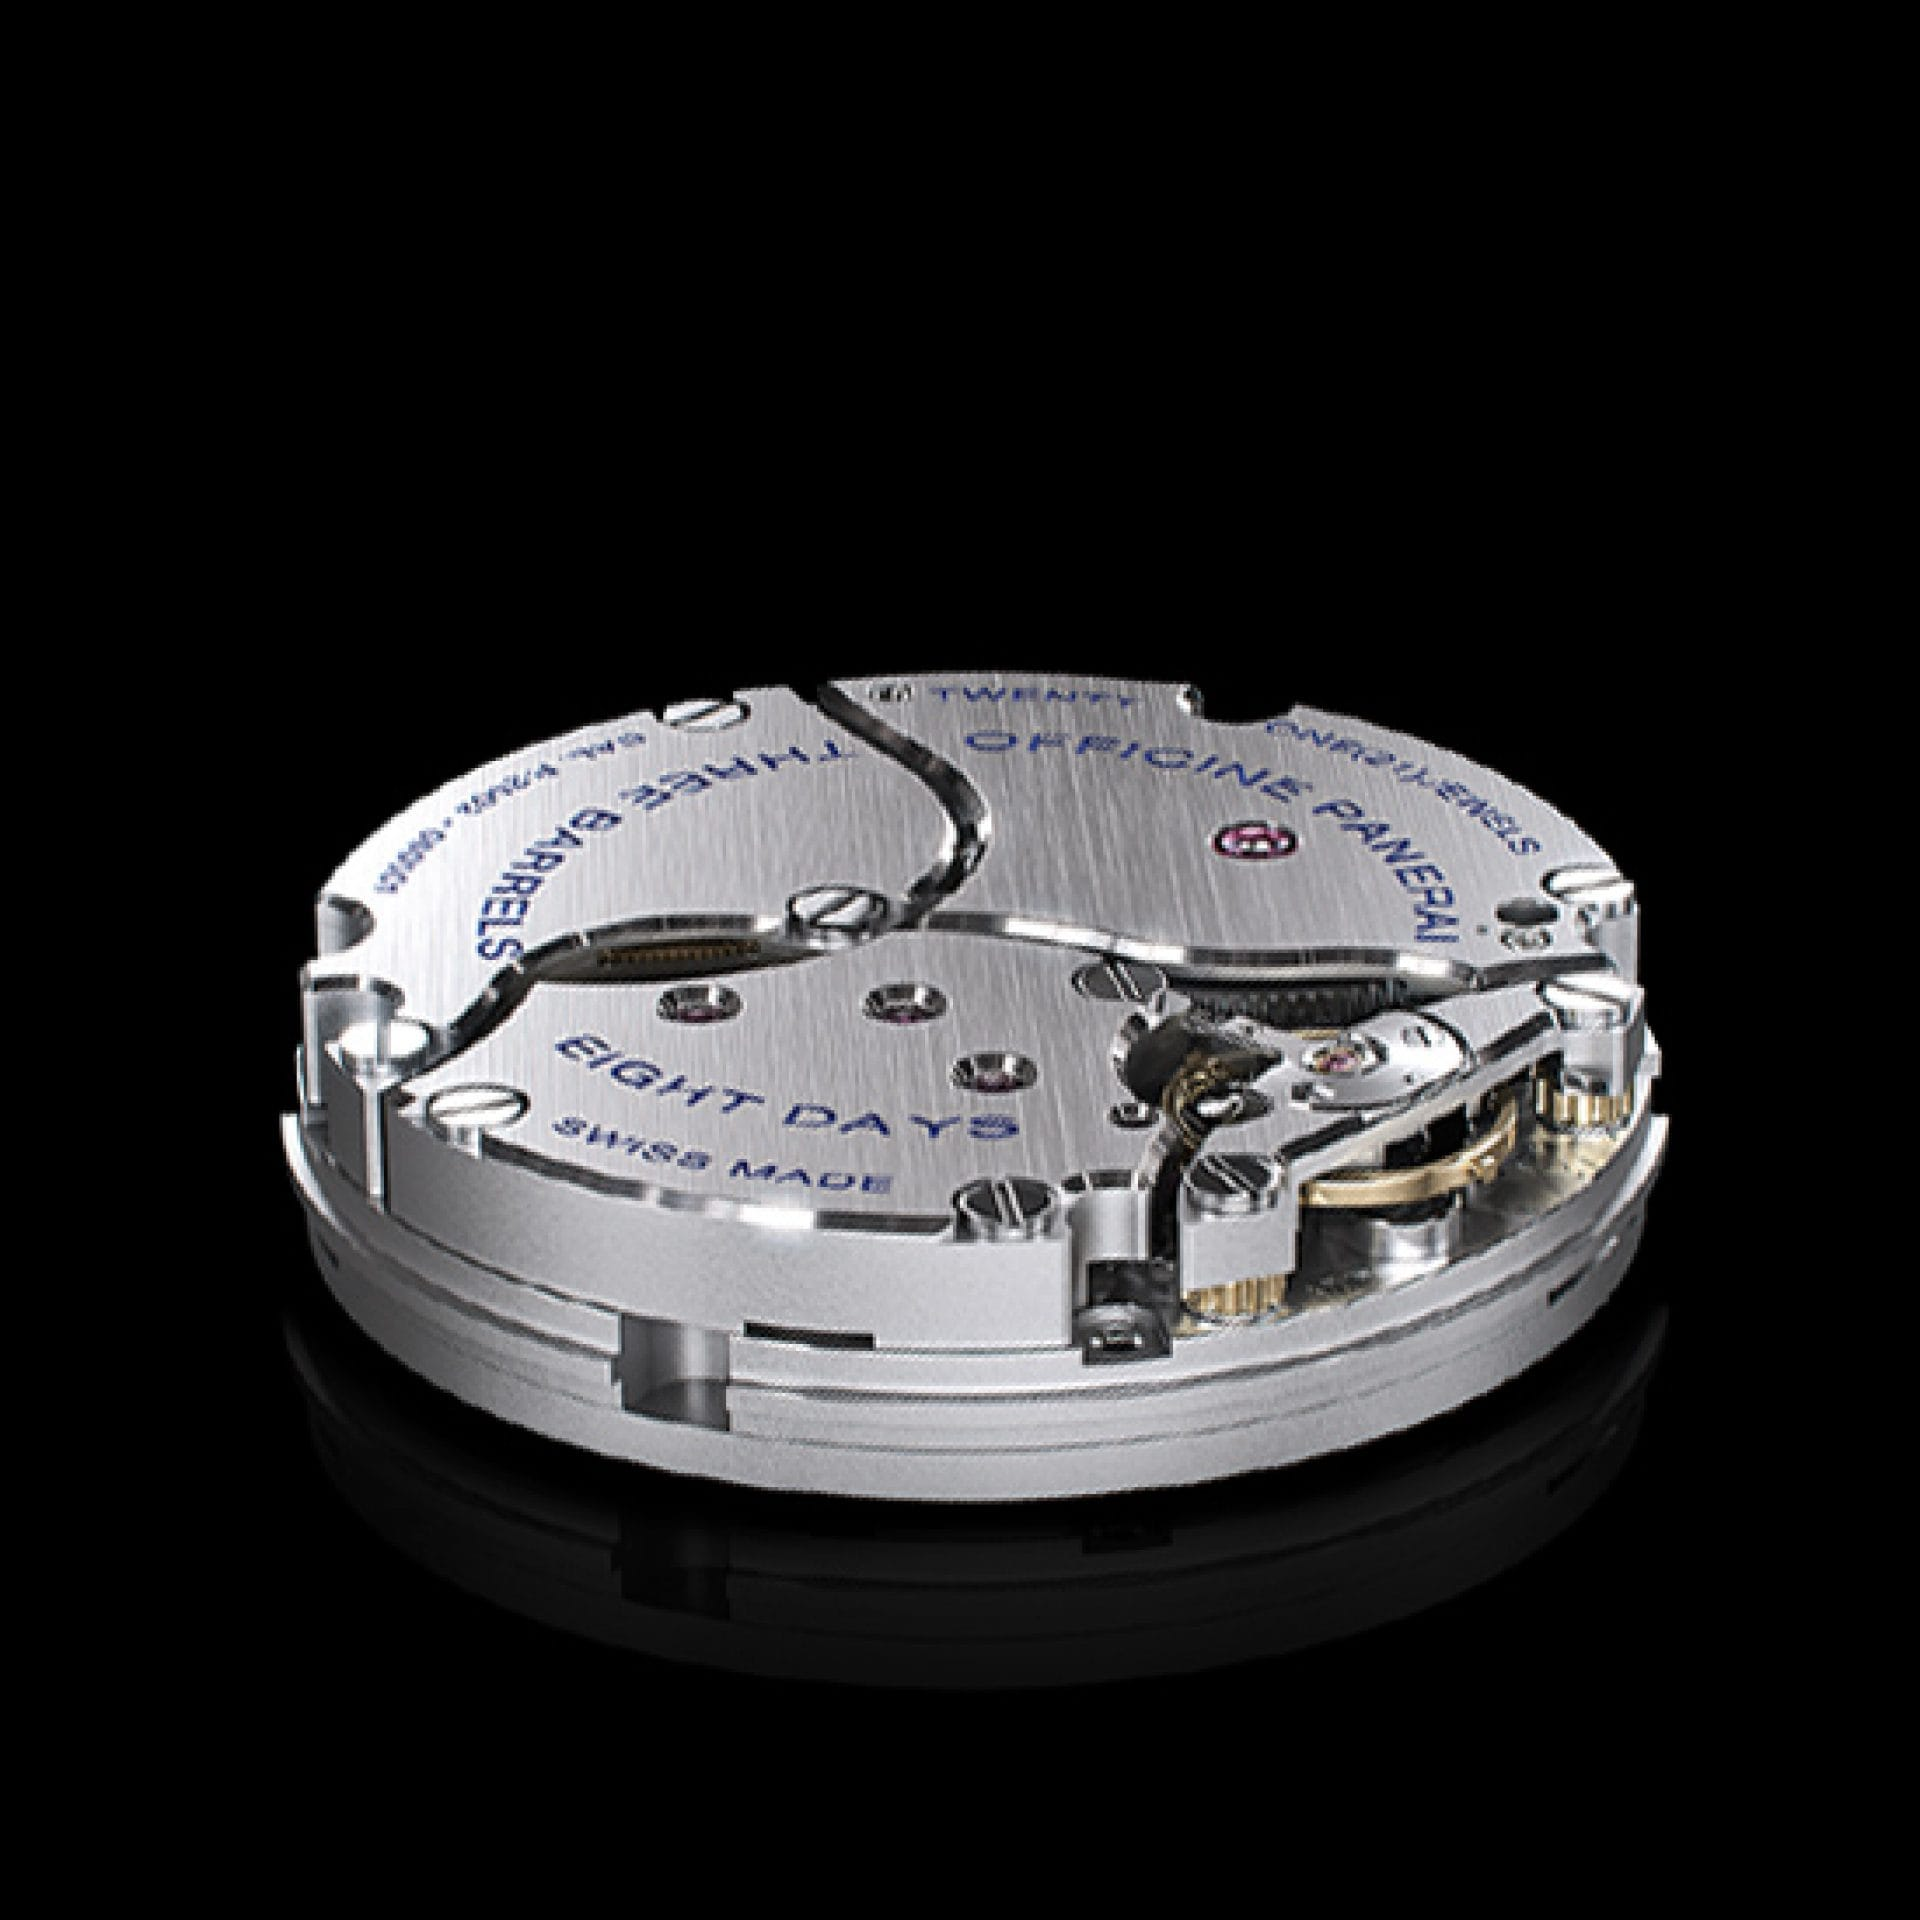 2005 - Officine Panerai's First In-House movement